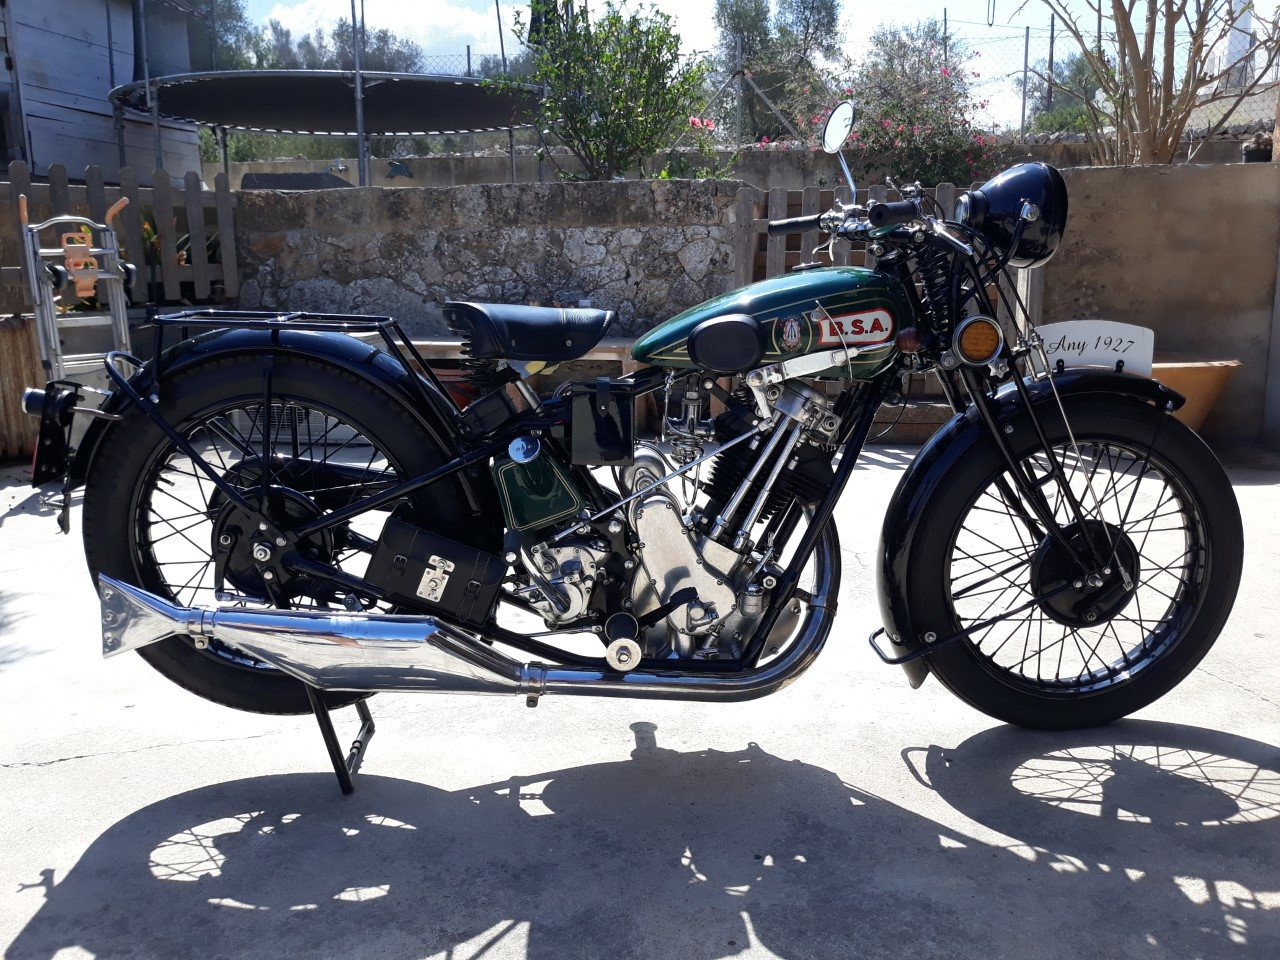 1927 BSA  S27  Sloper  500cc. - restored For Sale (picture 2 of 6)